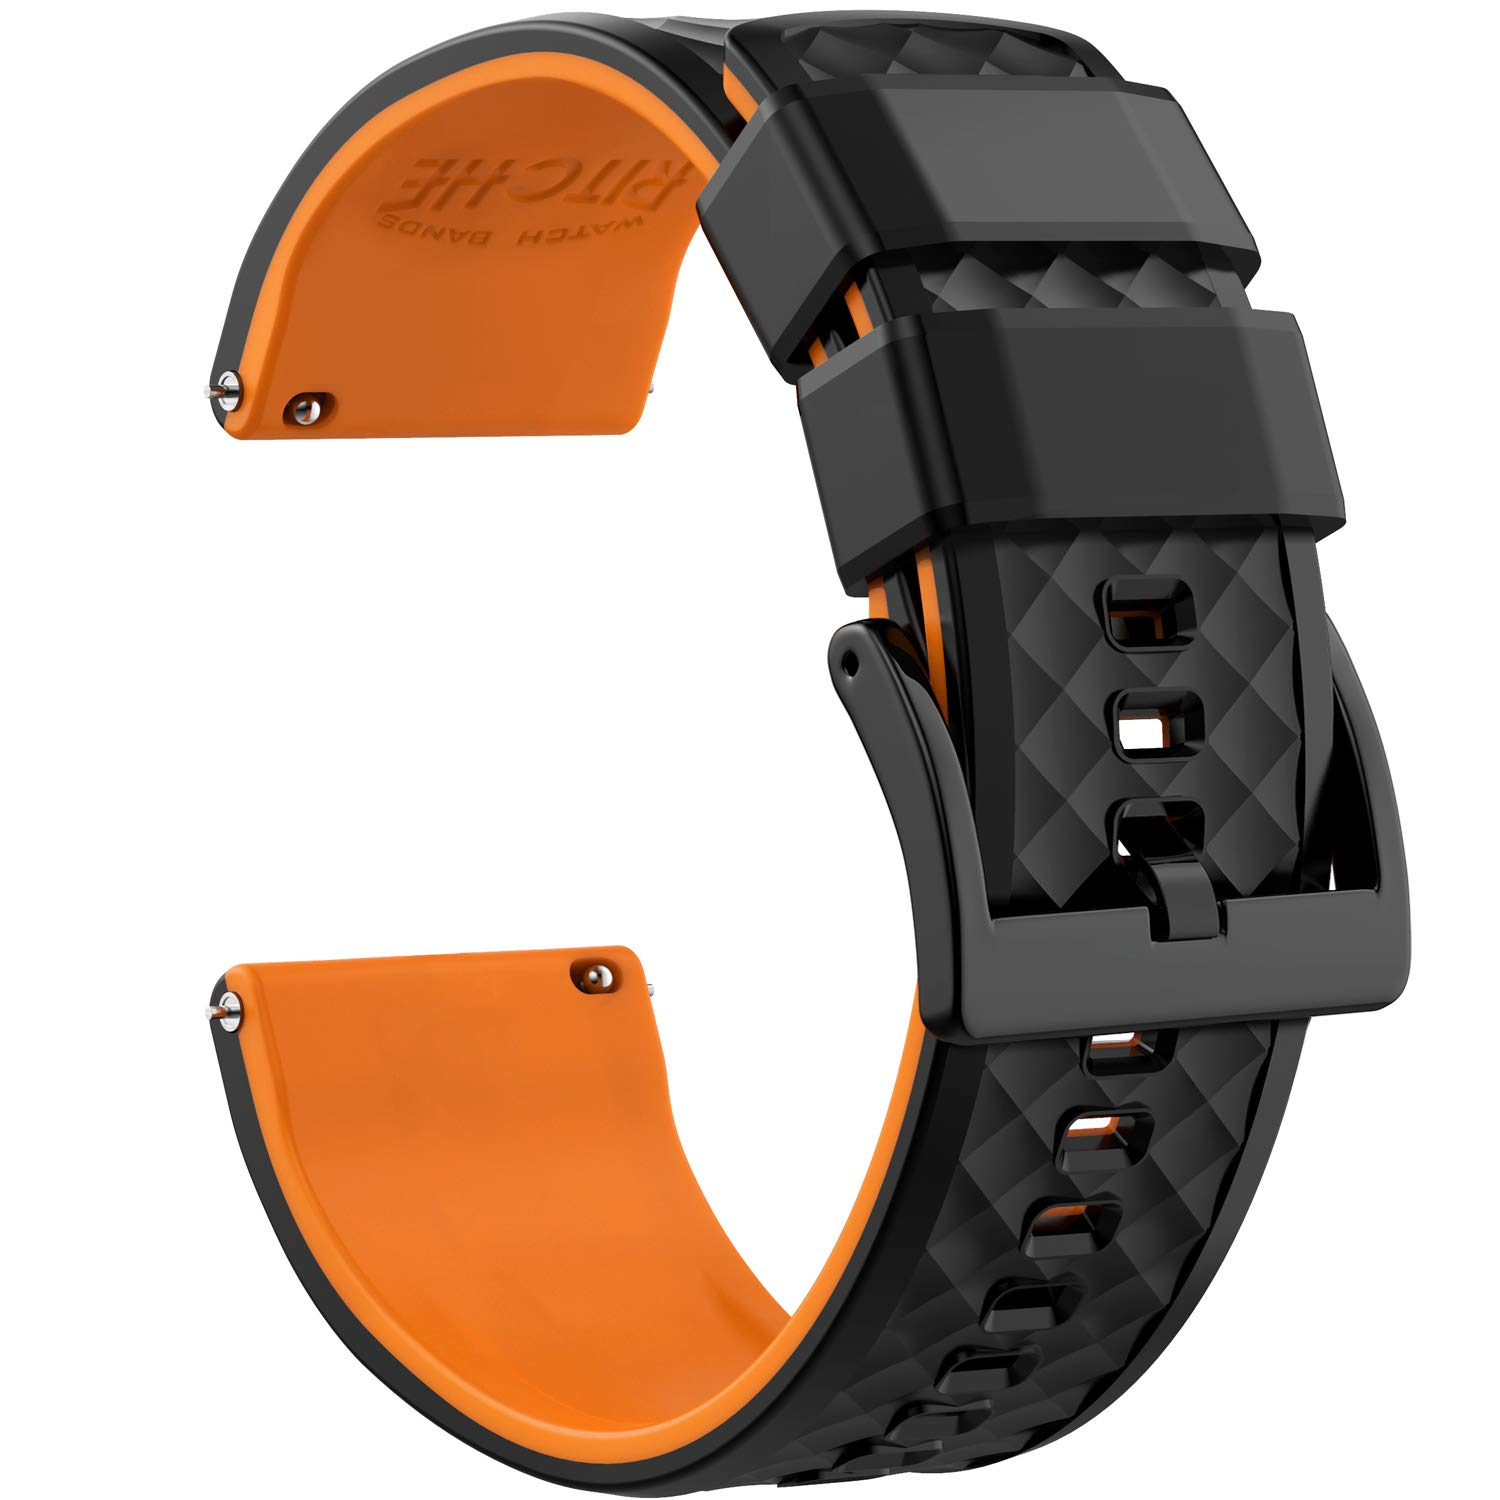 22mm Silicone Watch Bands Compatible with Samsung Gear S3 Frontier Watch Quick Release Rubber Watch Bands for Men by Ritche